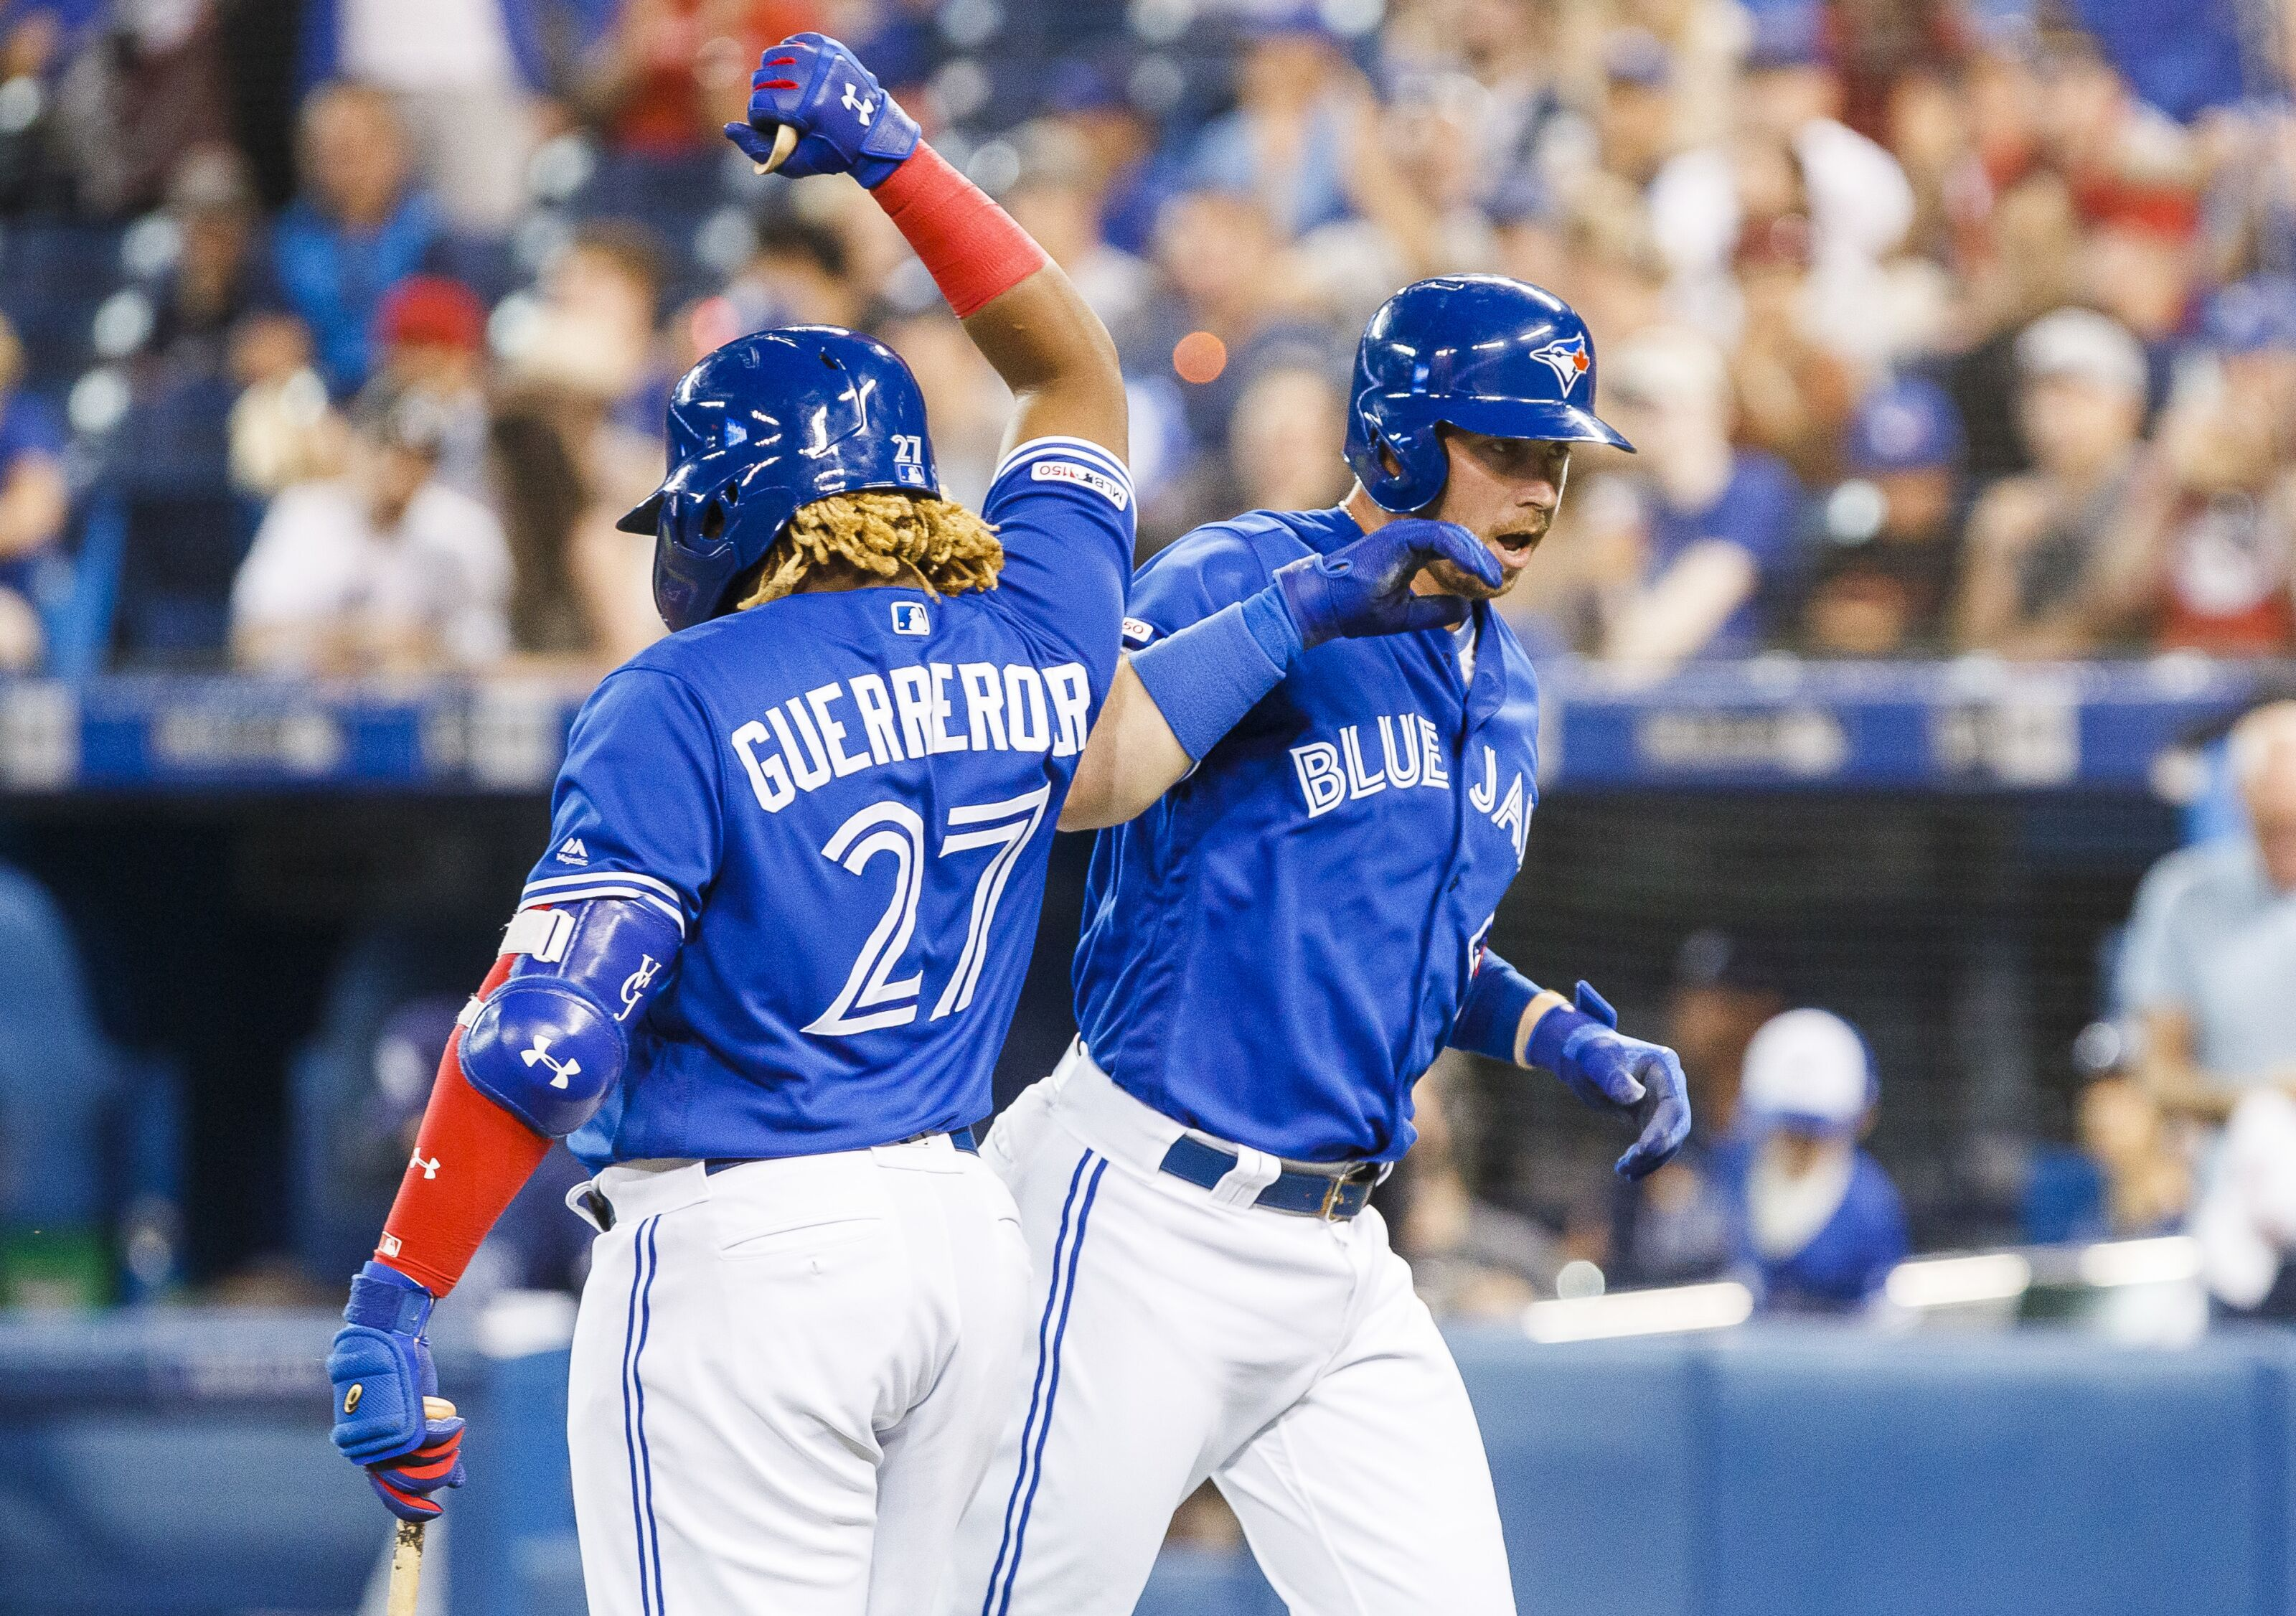 Blue Jays: Why not Justin Smoak and if not, then who?